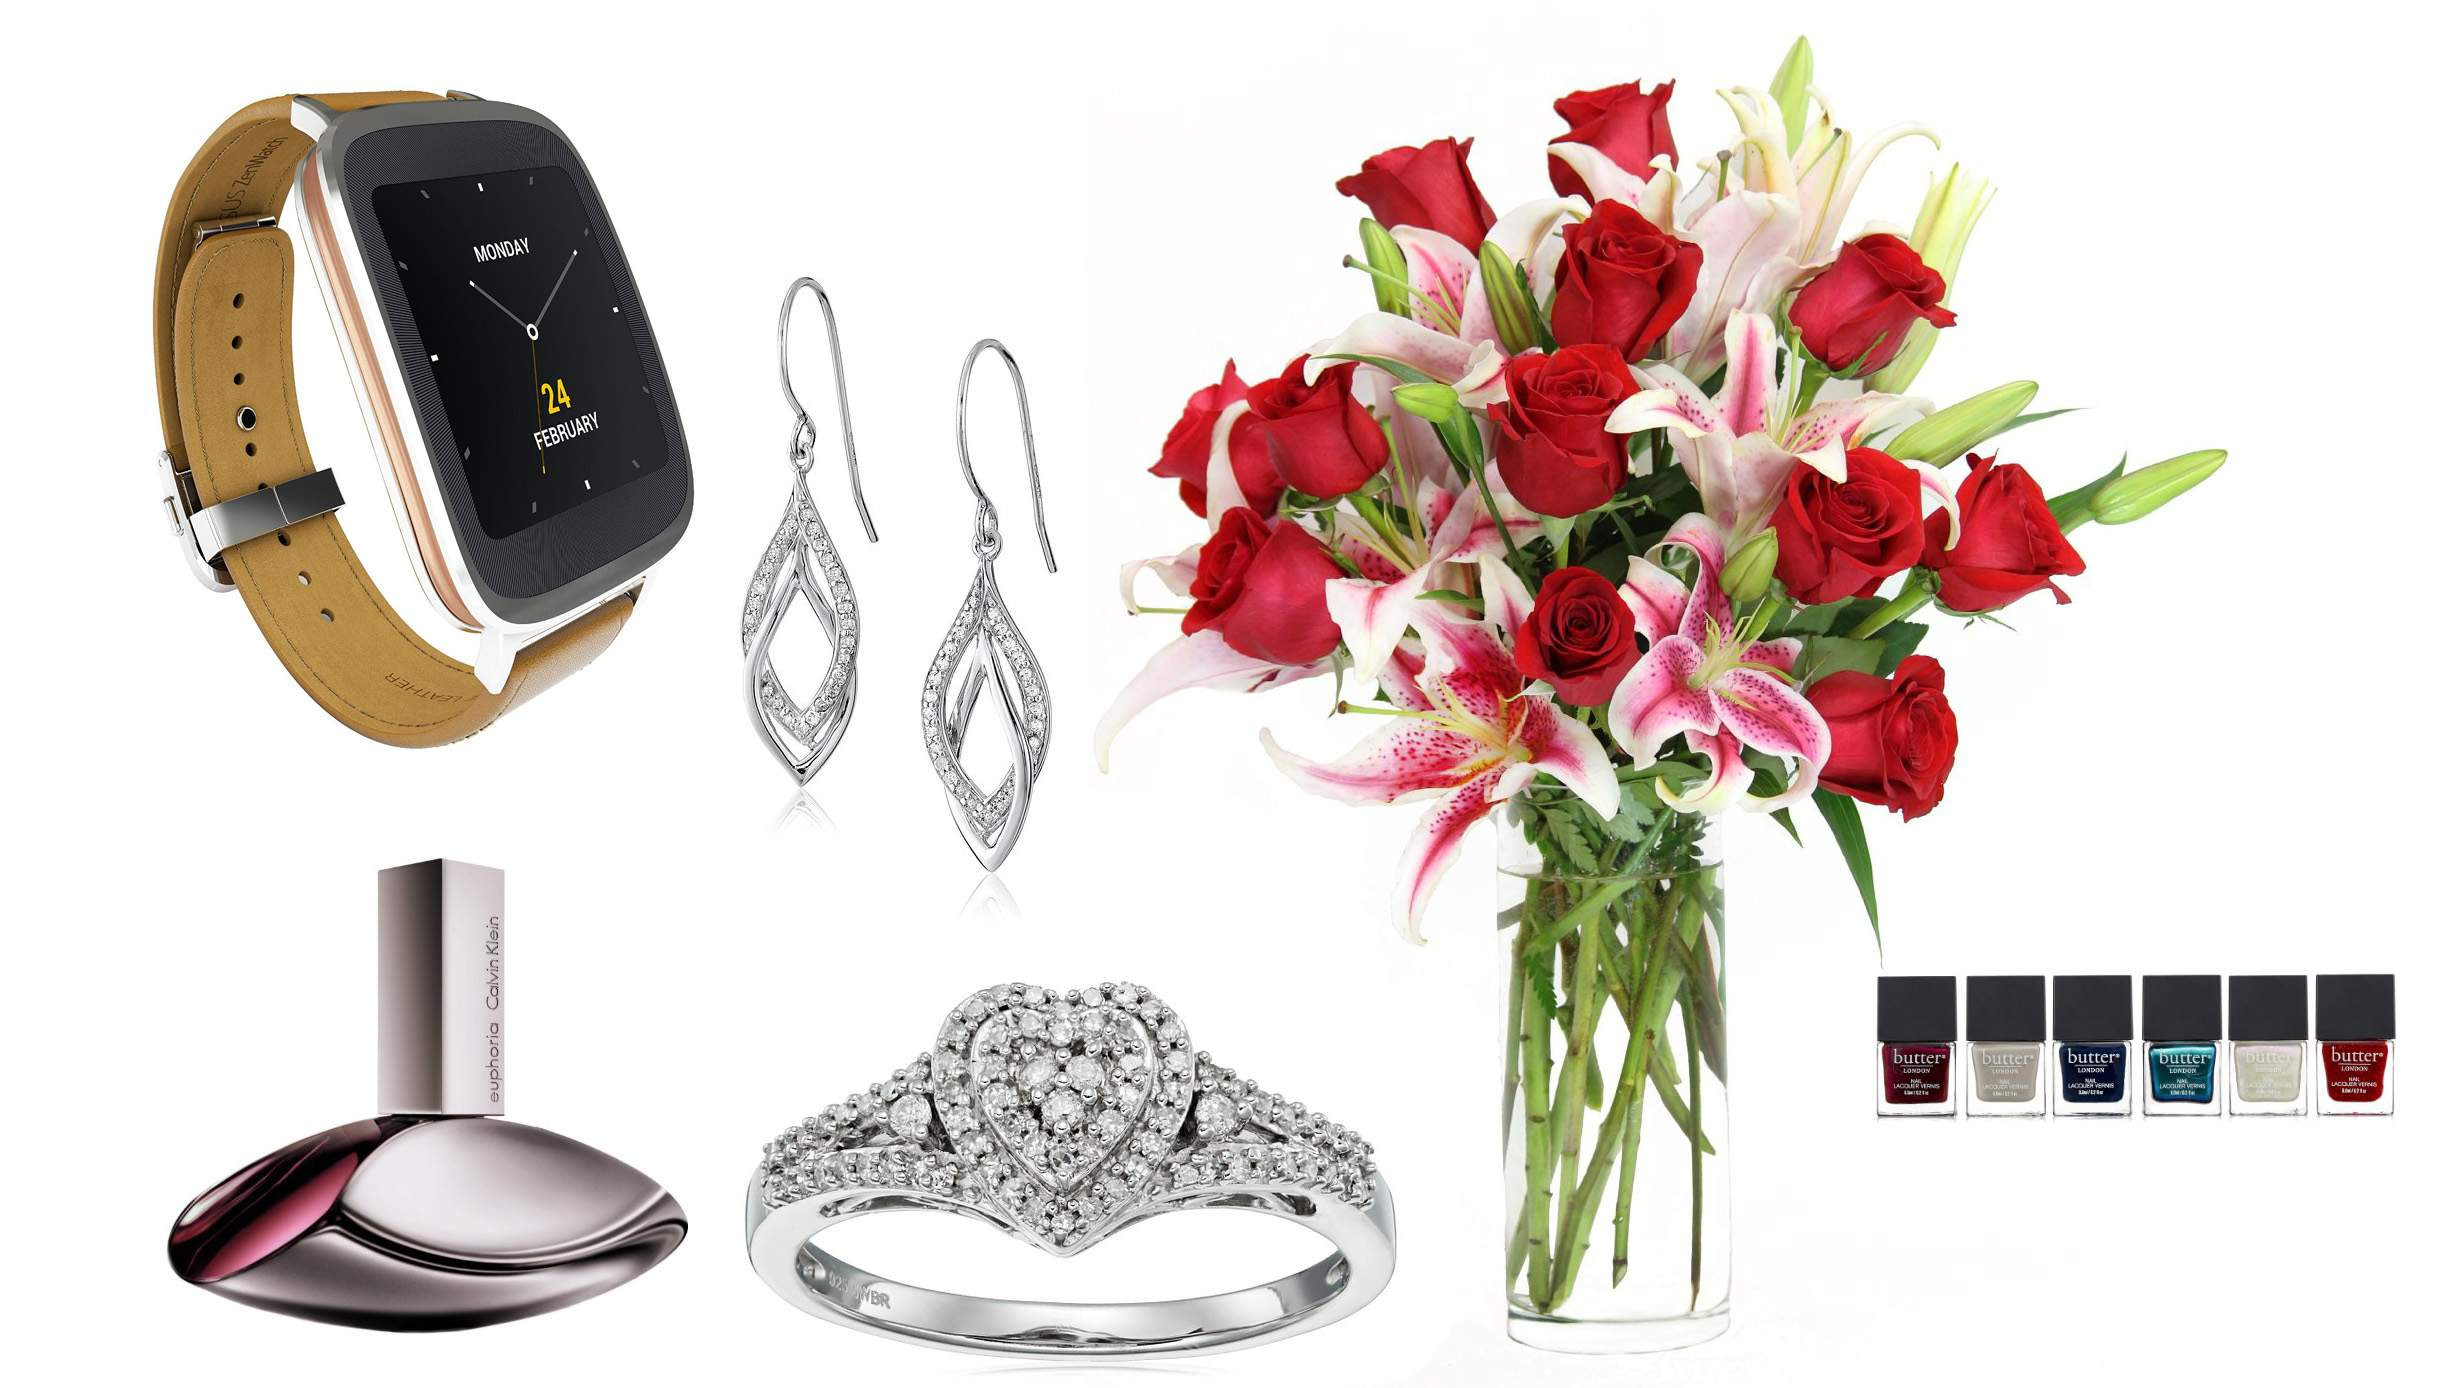 Valentine Day Gift Ideas For Wife  Top 20 Best Valentine's Day Gifts for Women